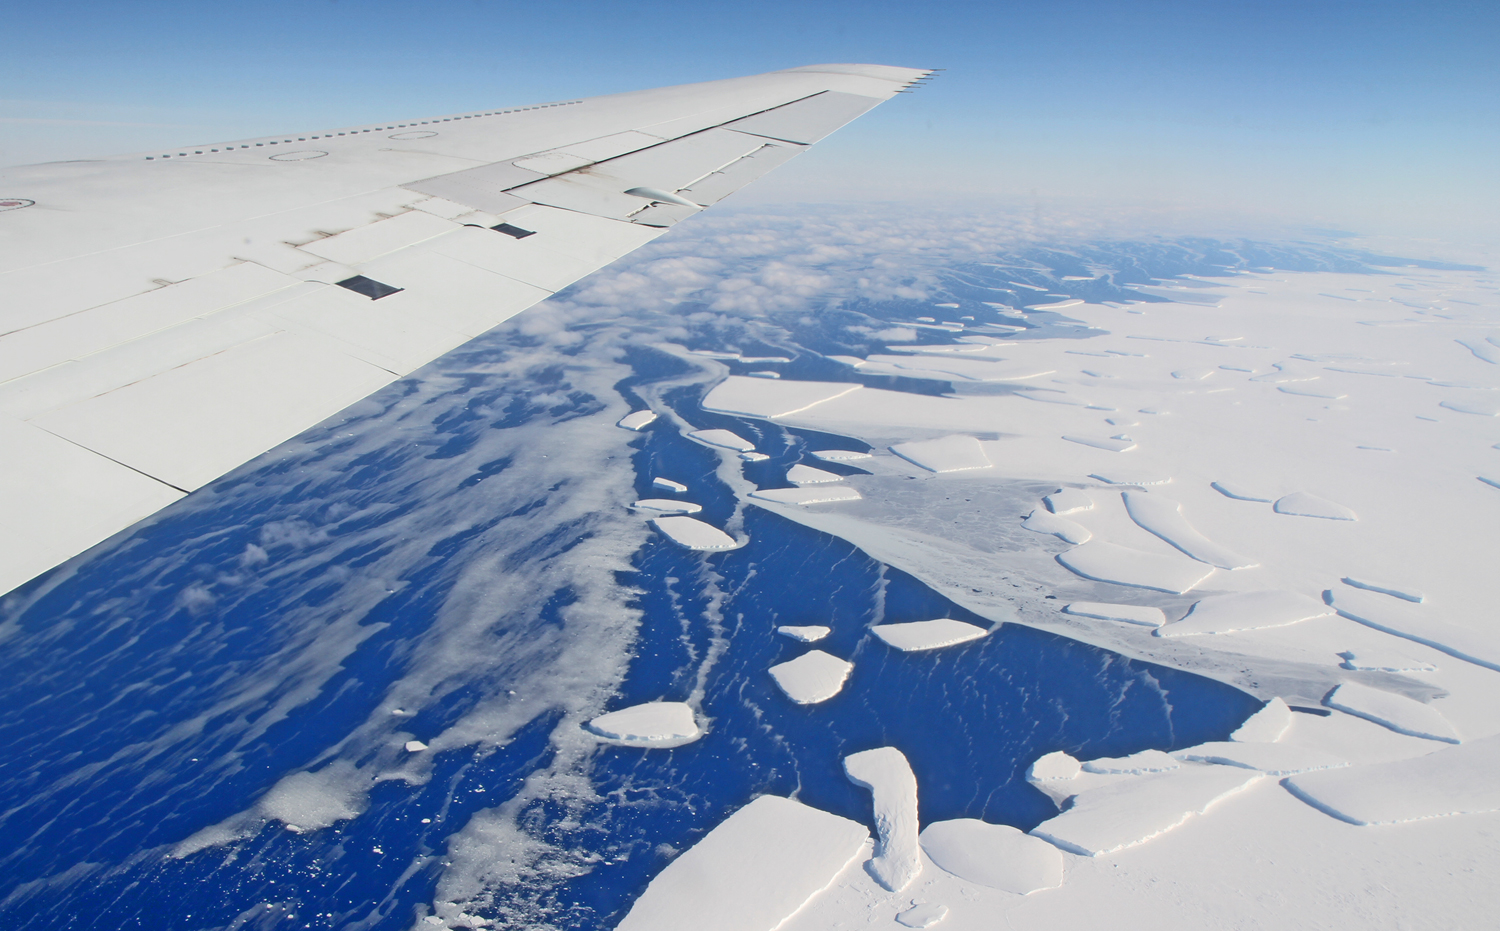 Calving-front-of-an-ice-shelf-in-West-Antarctica-photographed-during-NASA's-Operation-IceBridge-in-2012